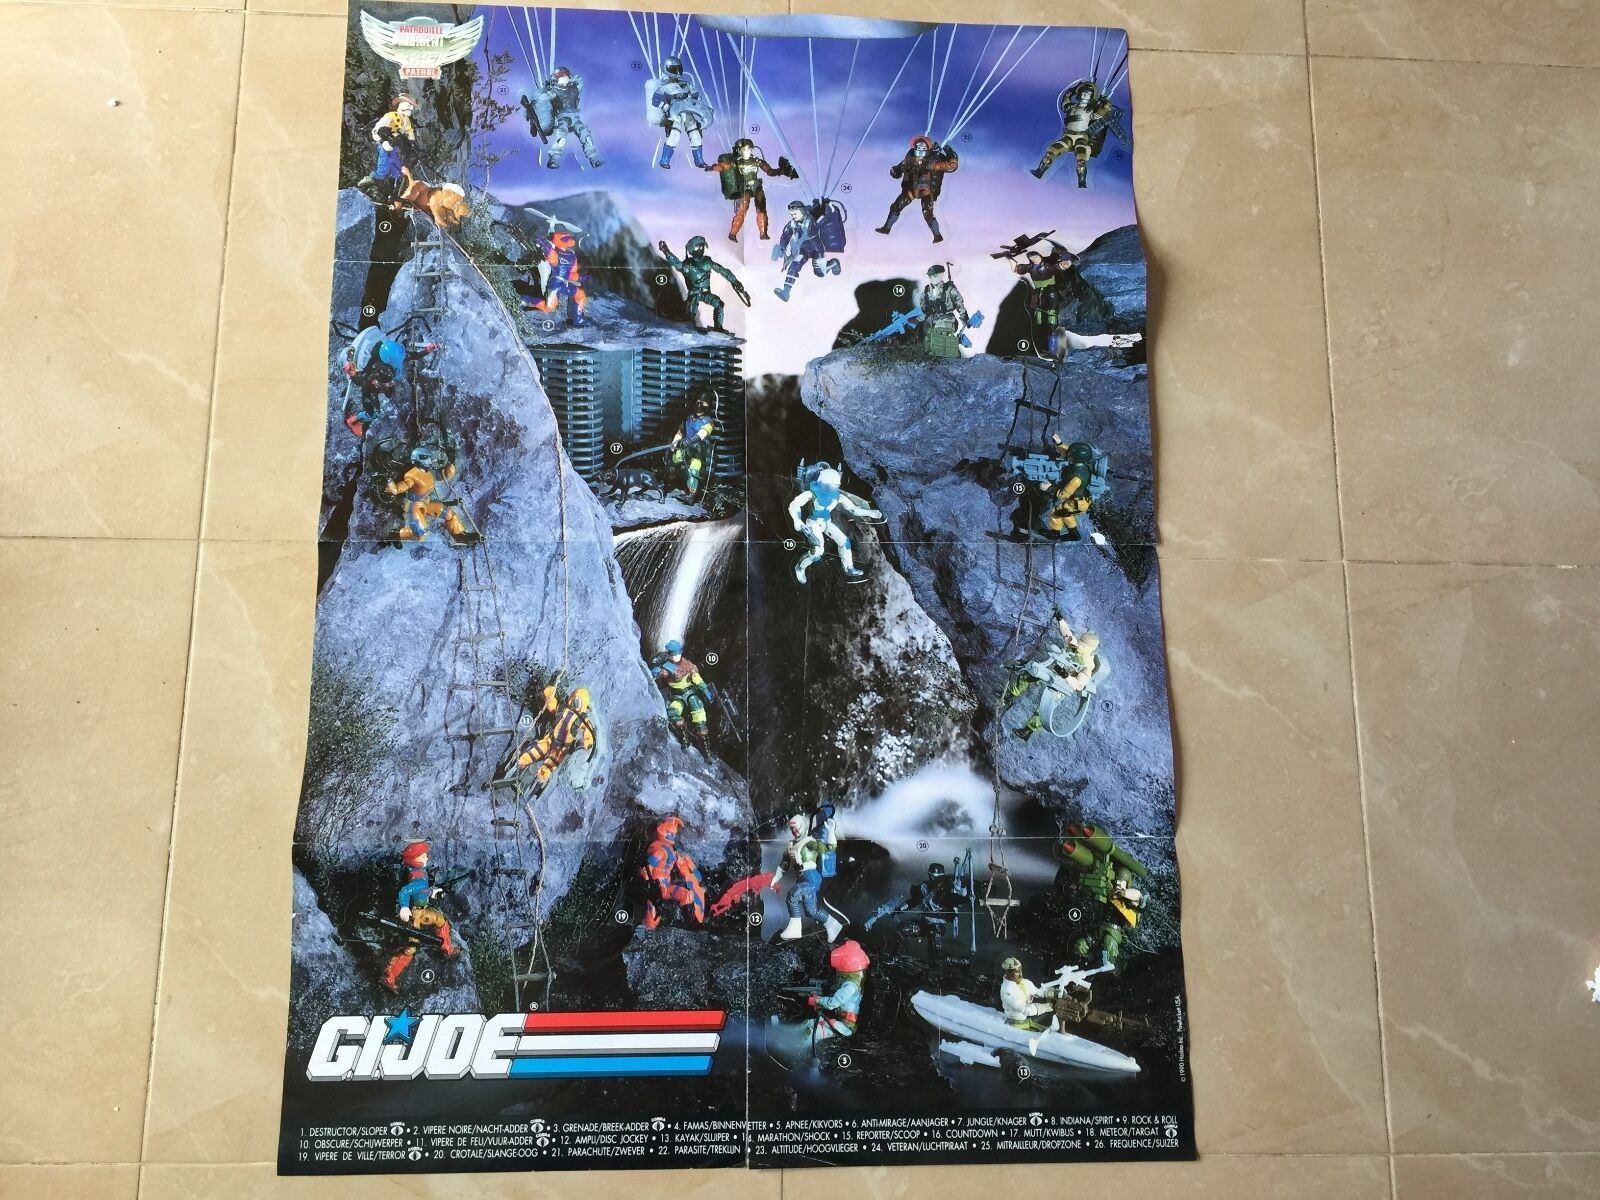 GIJOE 1990 hasbro POSTER POSTER POSTER catalogue 32 inch super large wall stickers cd0e98